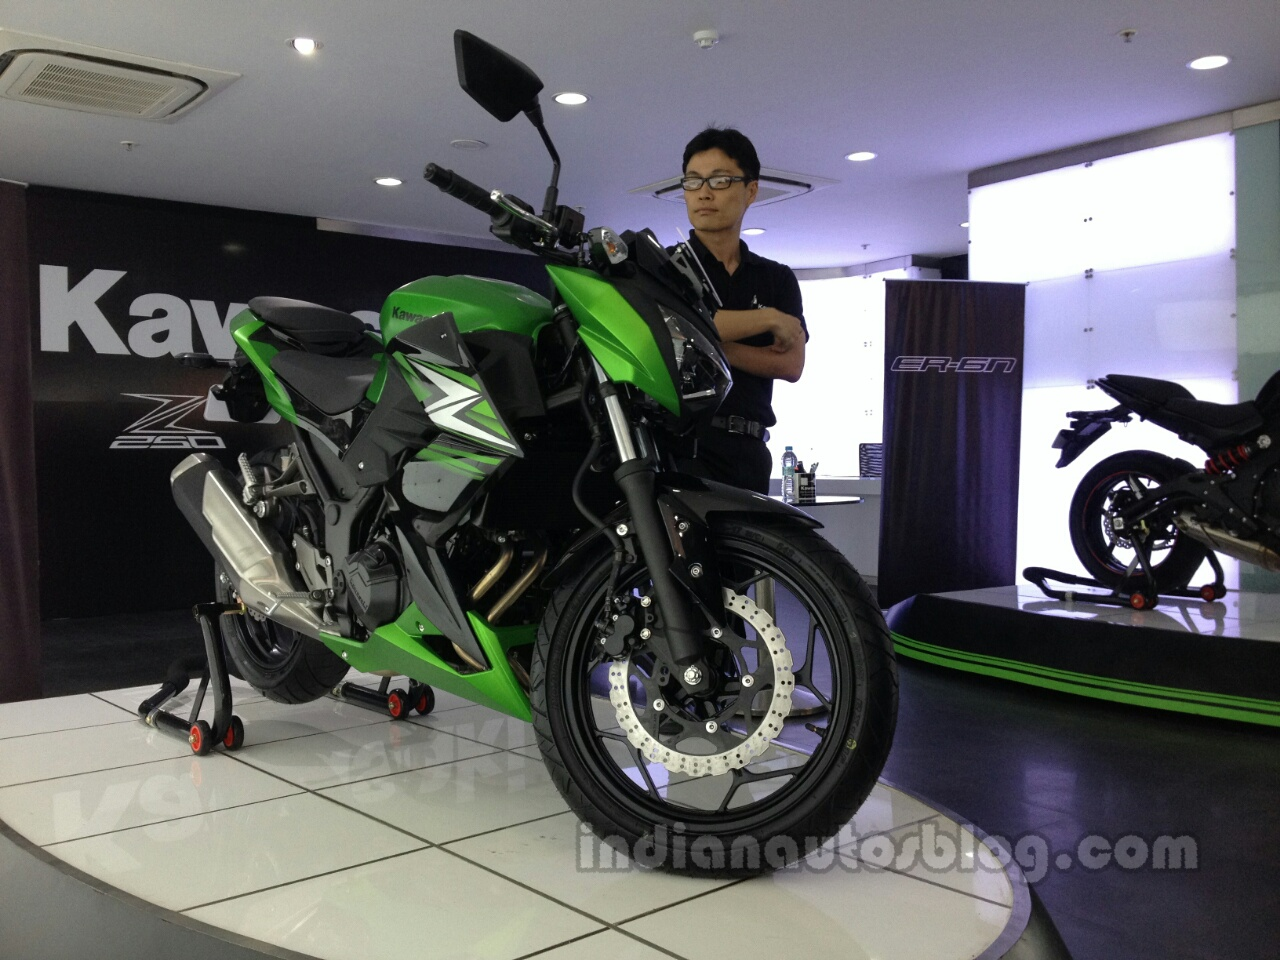 kawasaki-z250-2017-sap-ra-mat-tai-an-do